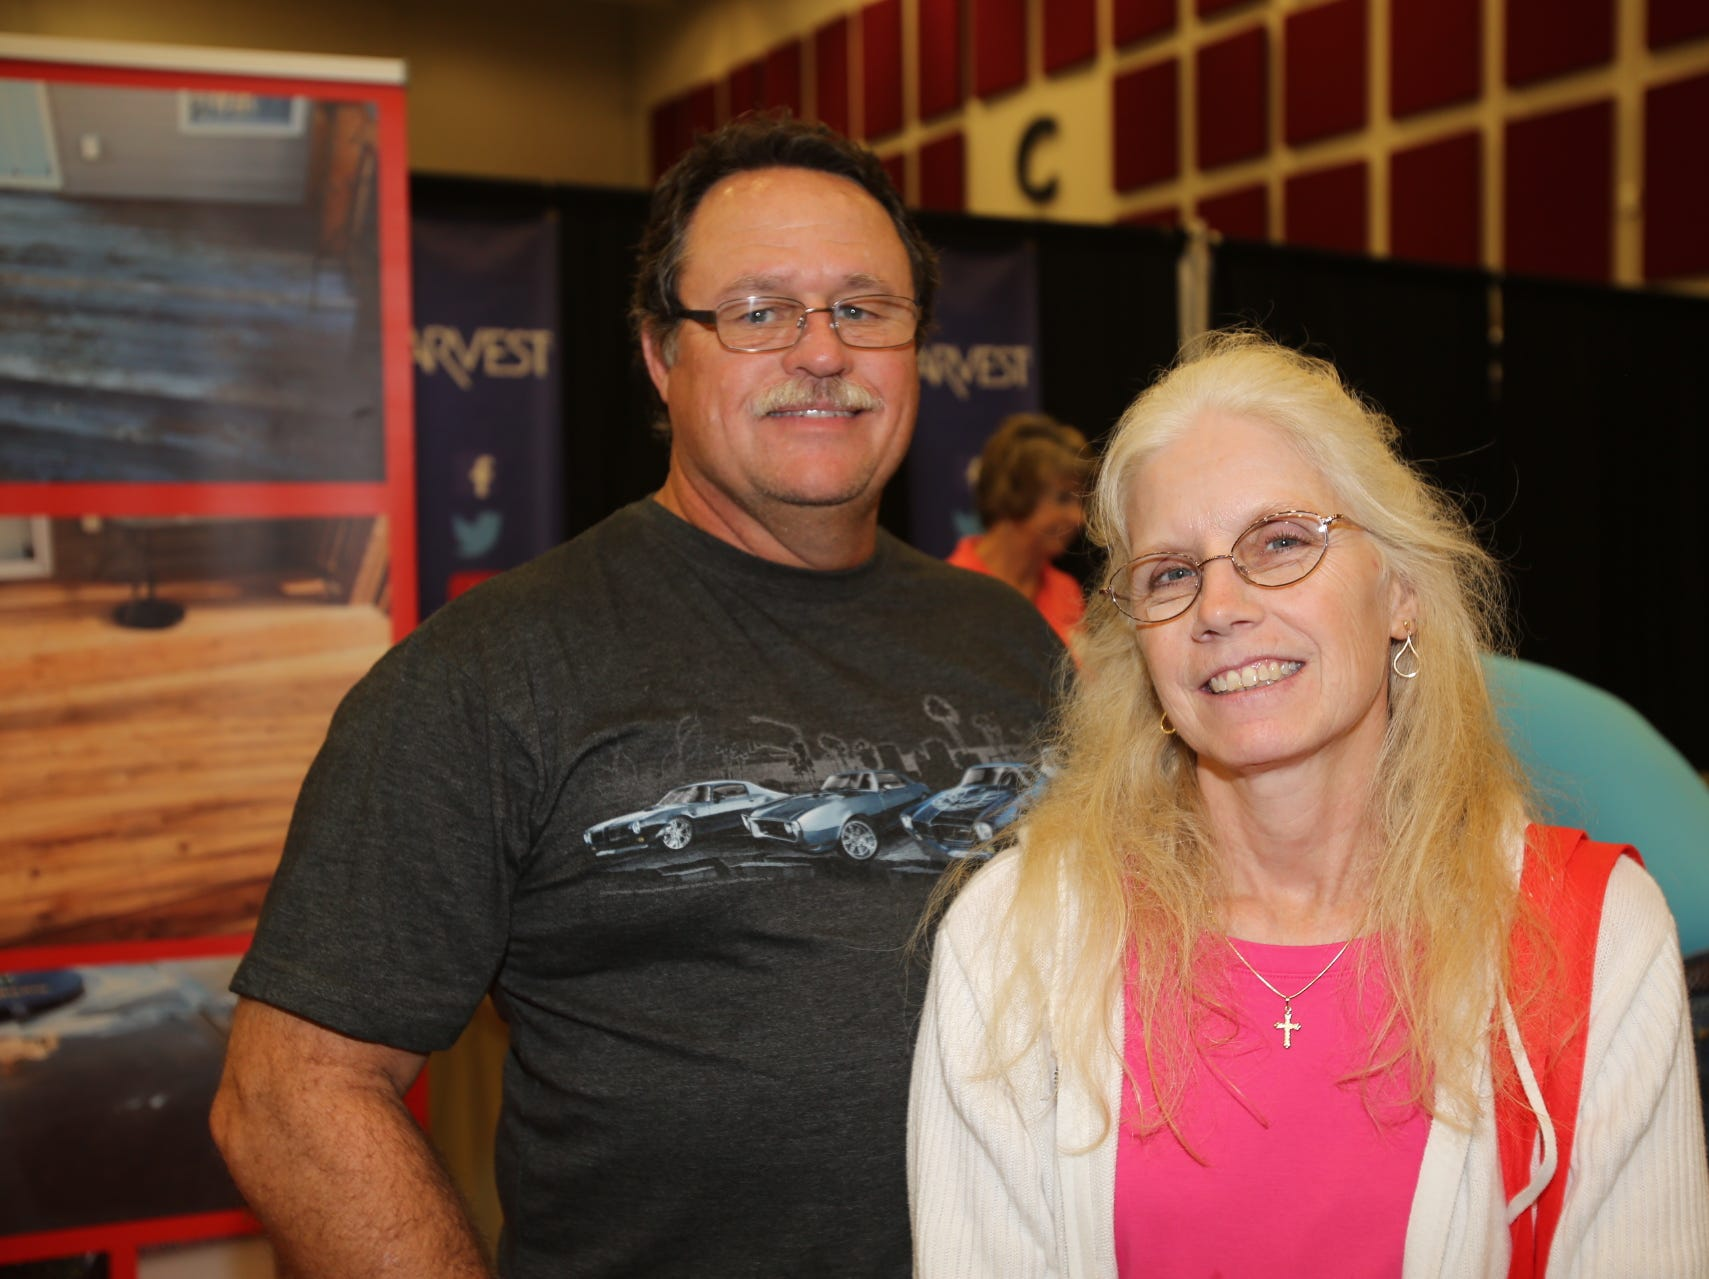 Scot and Louise Krepps